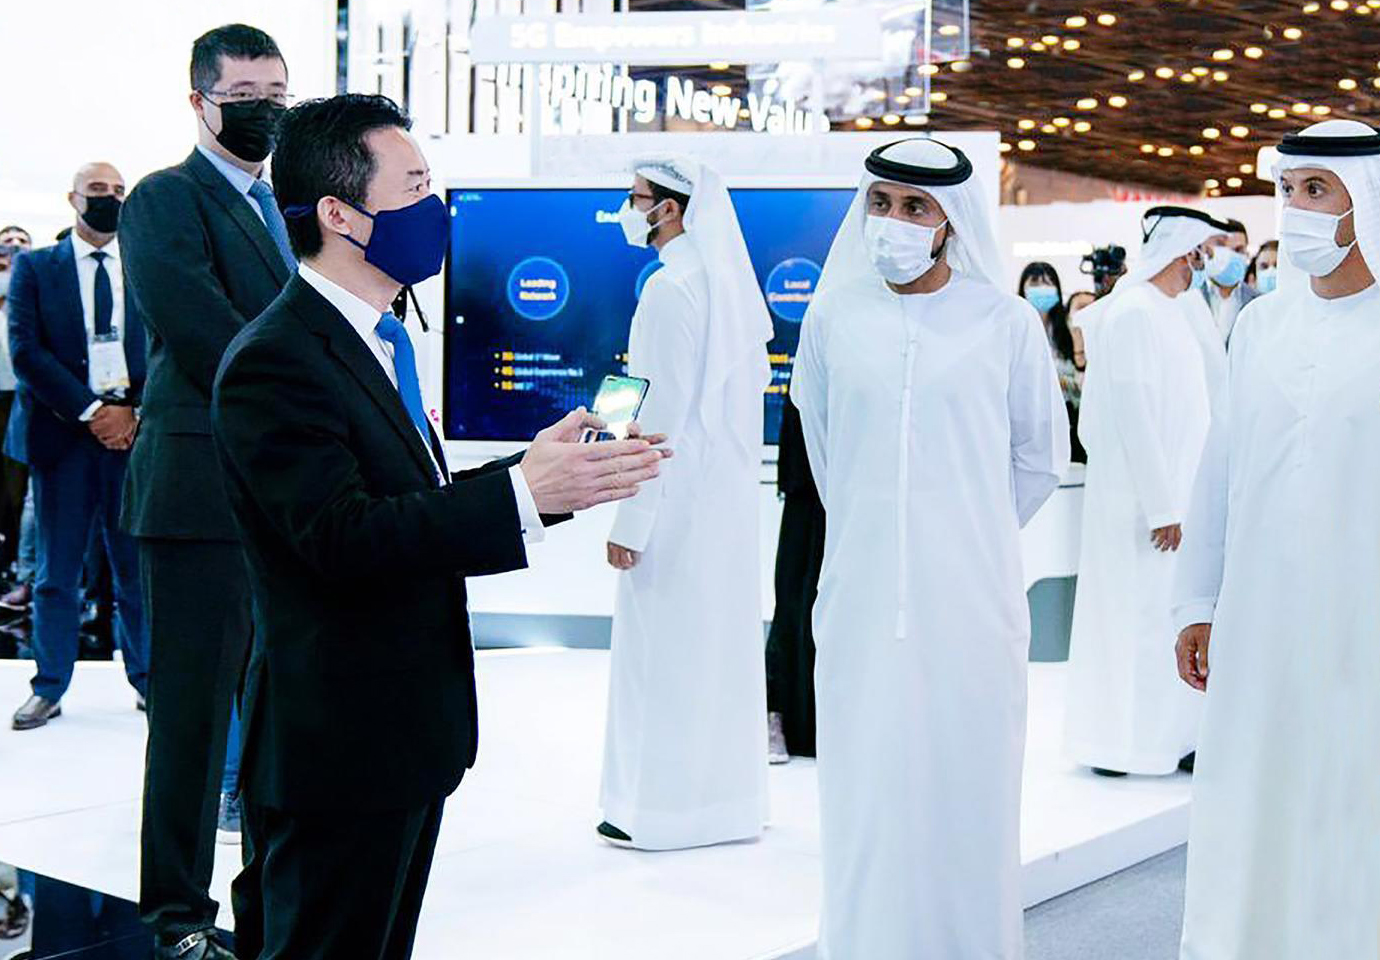 Gulfood returns with unmissable opportunity for global food industry to reconnect and secure crucial early-year business boost